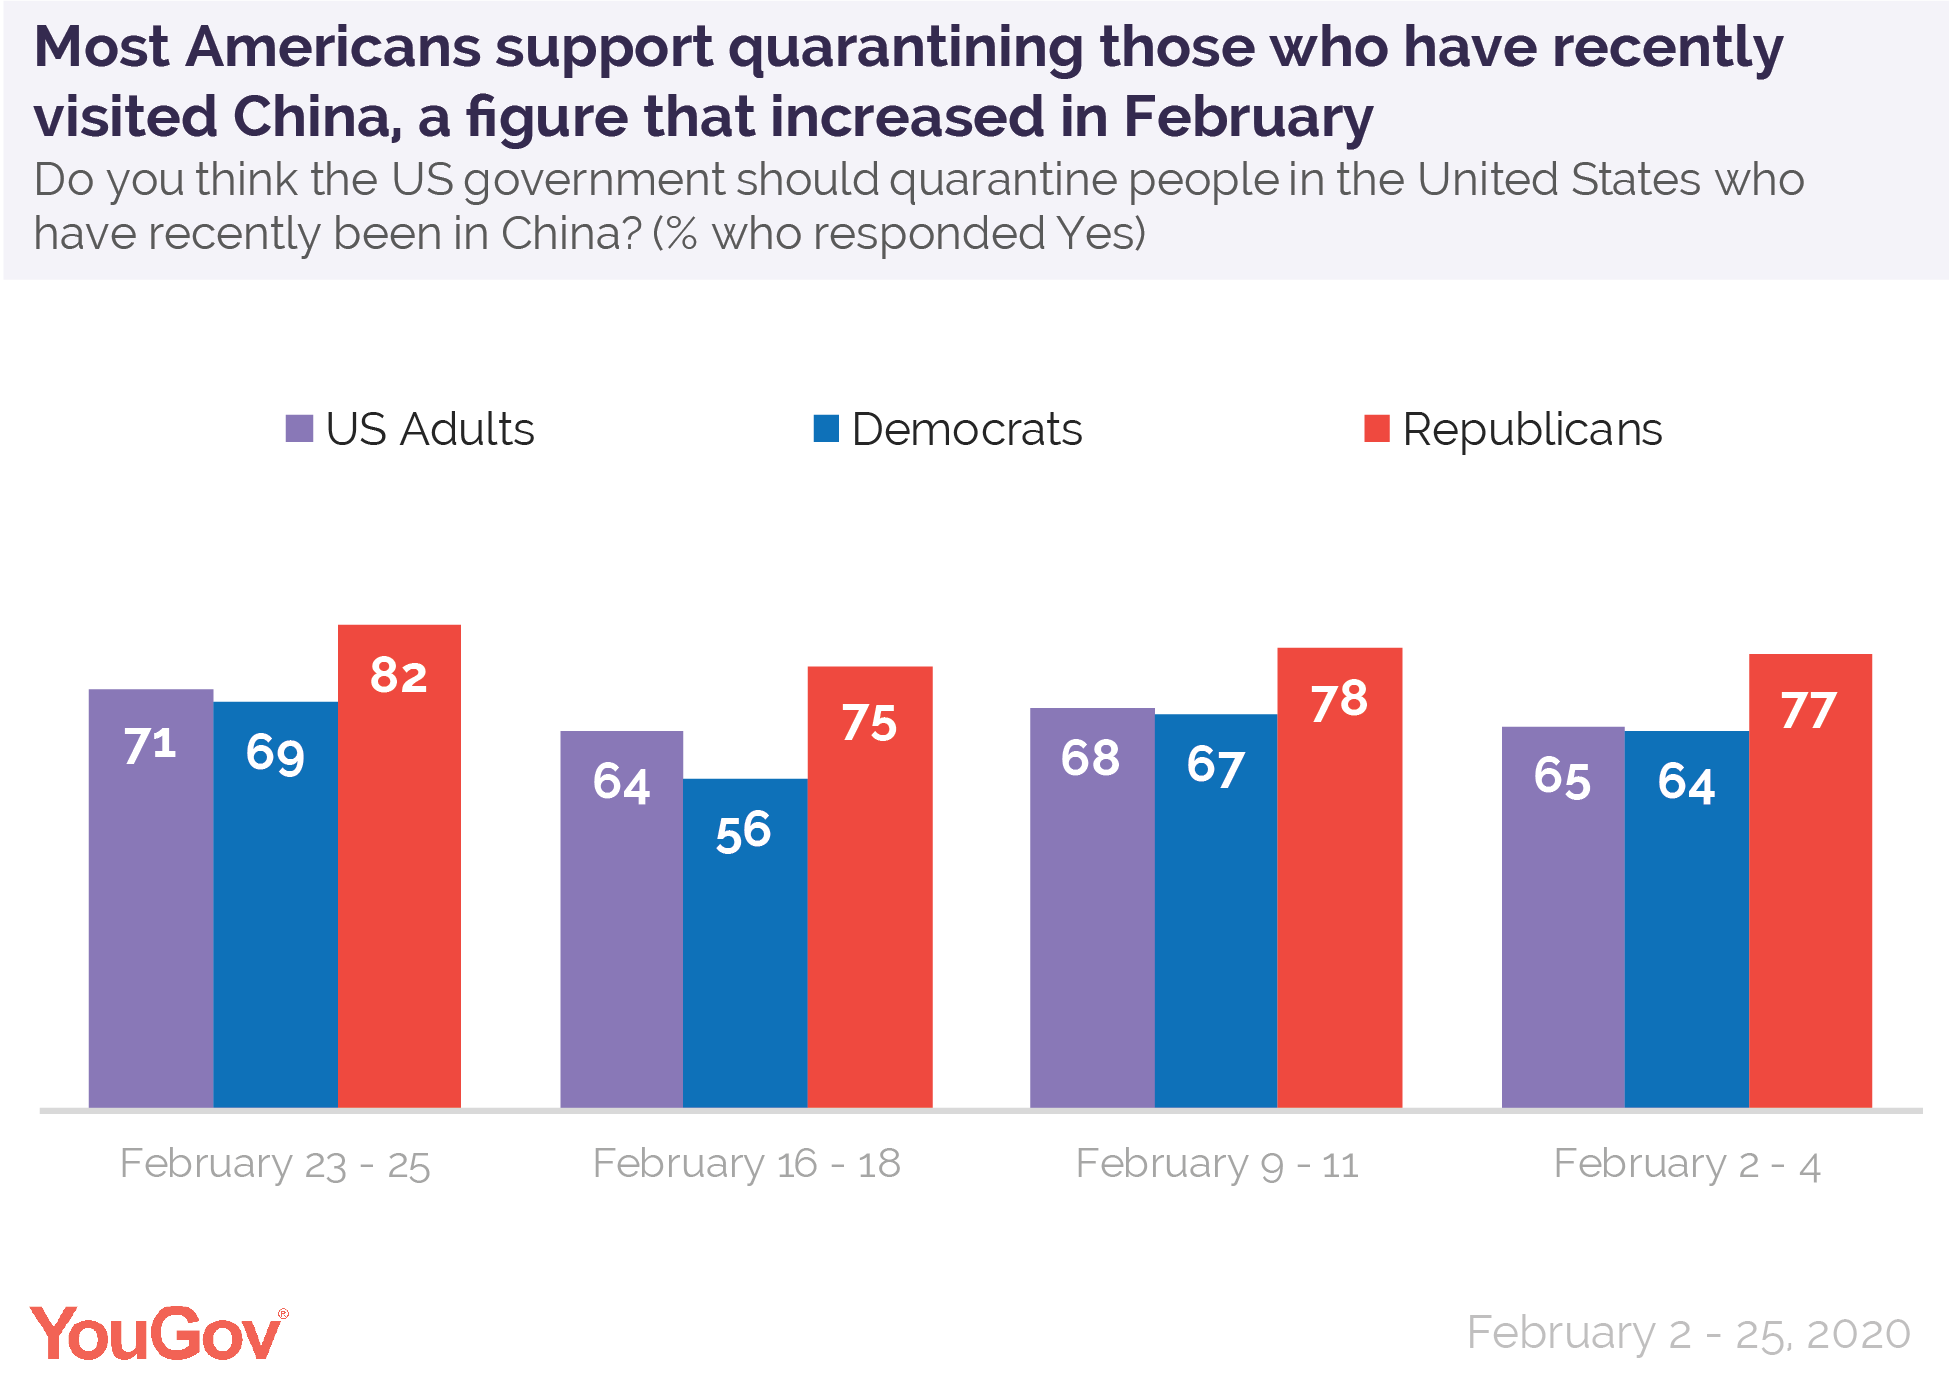 Most Americans support quarantining those who have recently visited China, a figure that increased in February